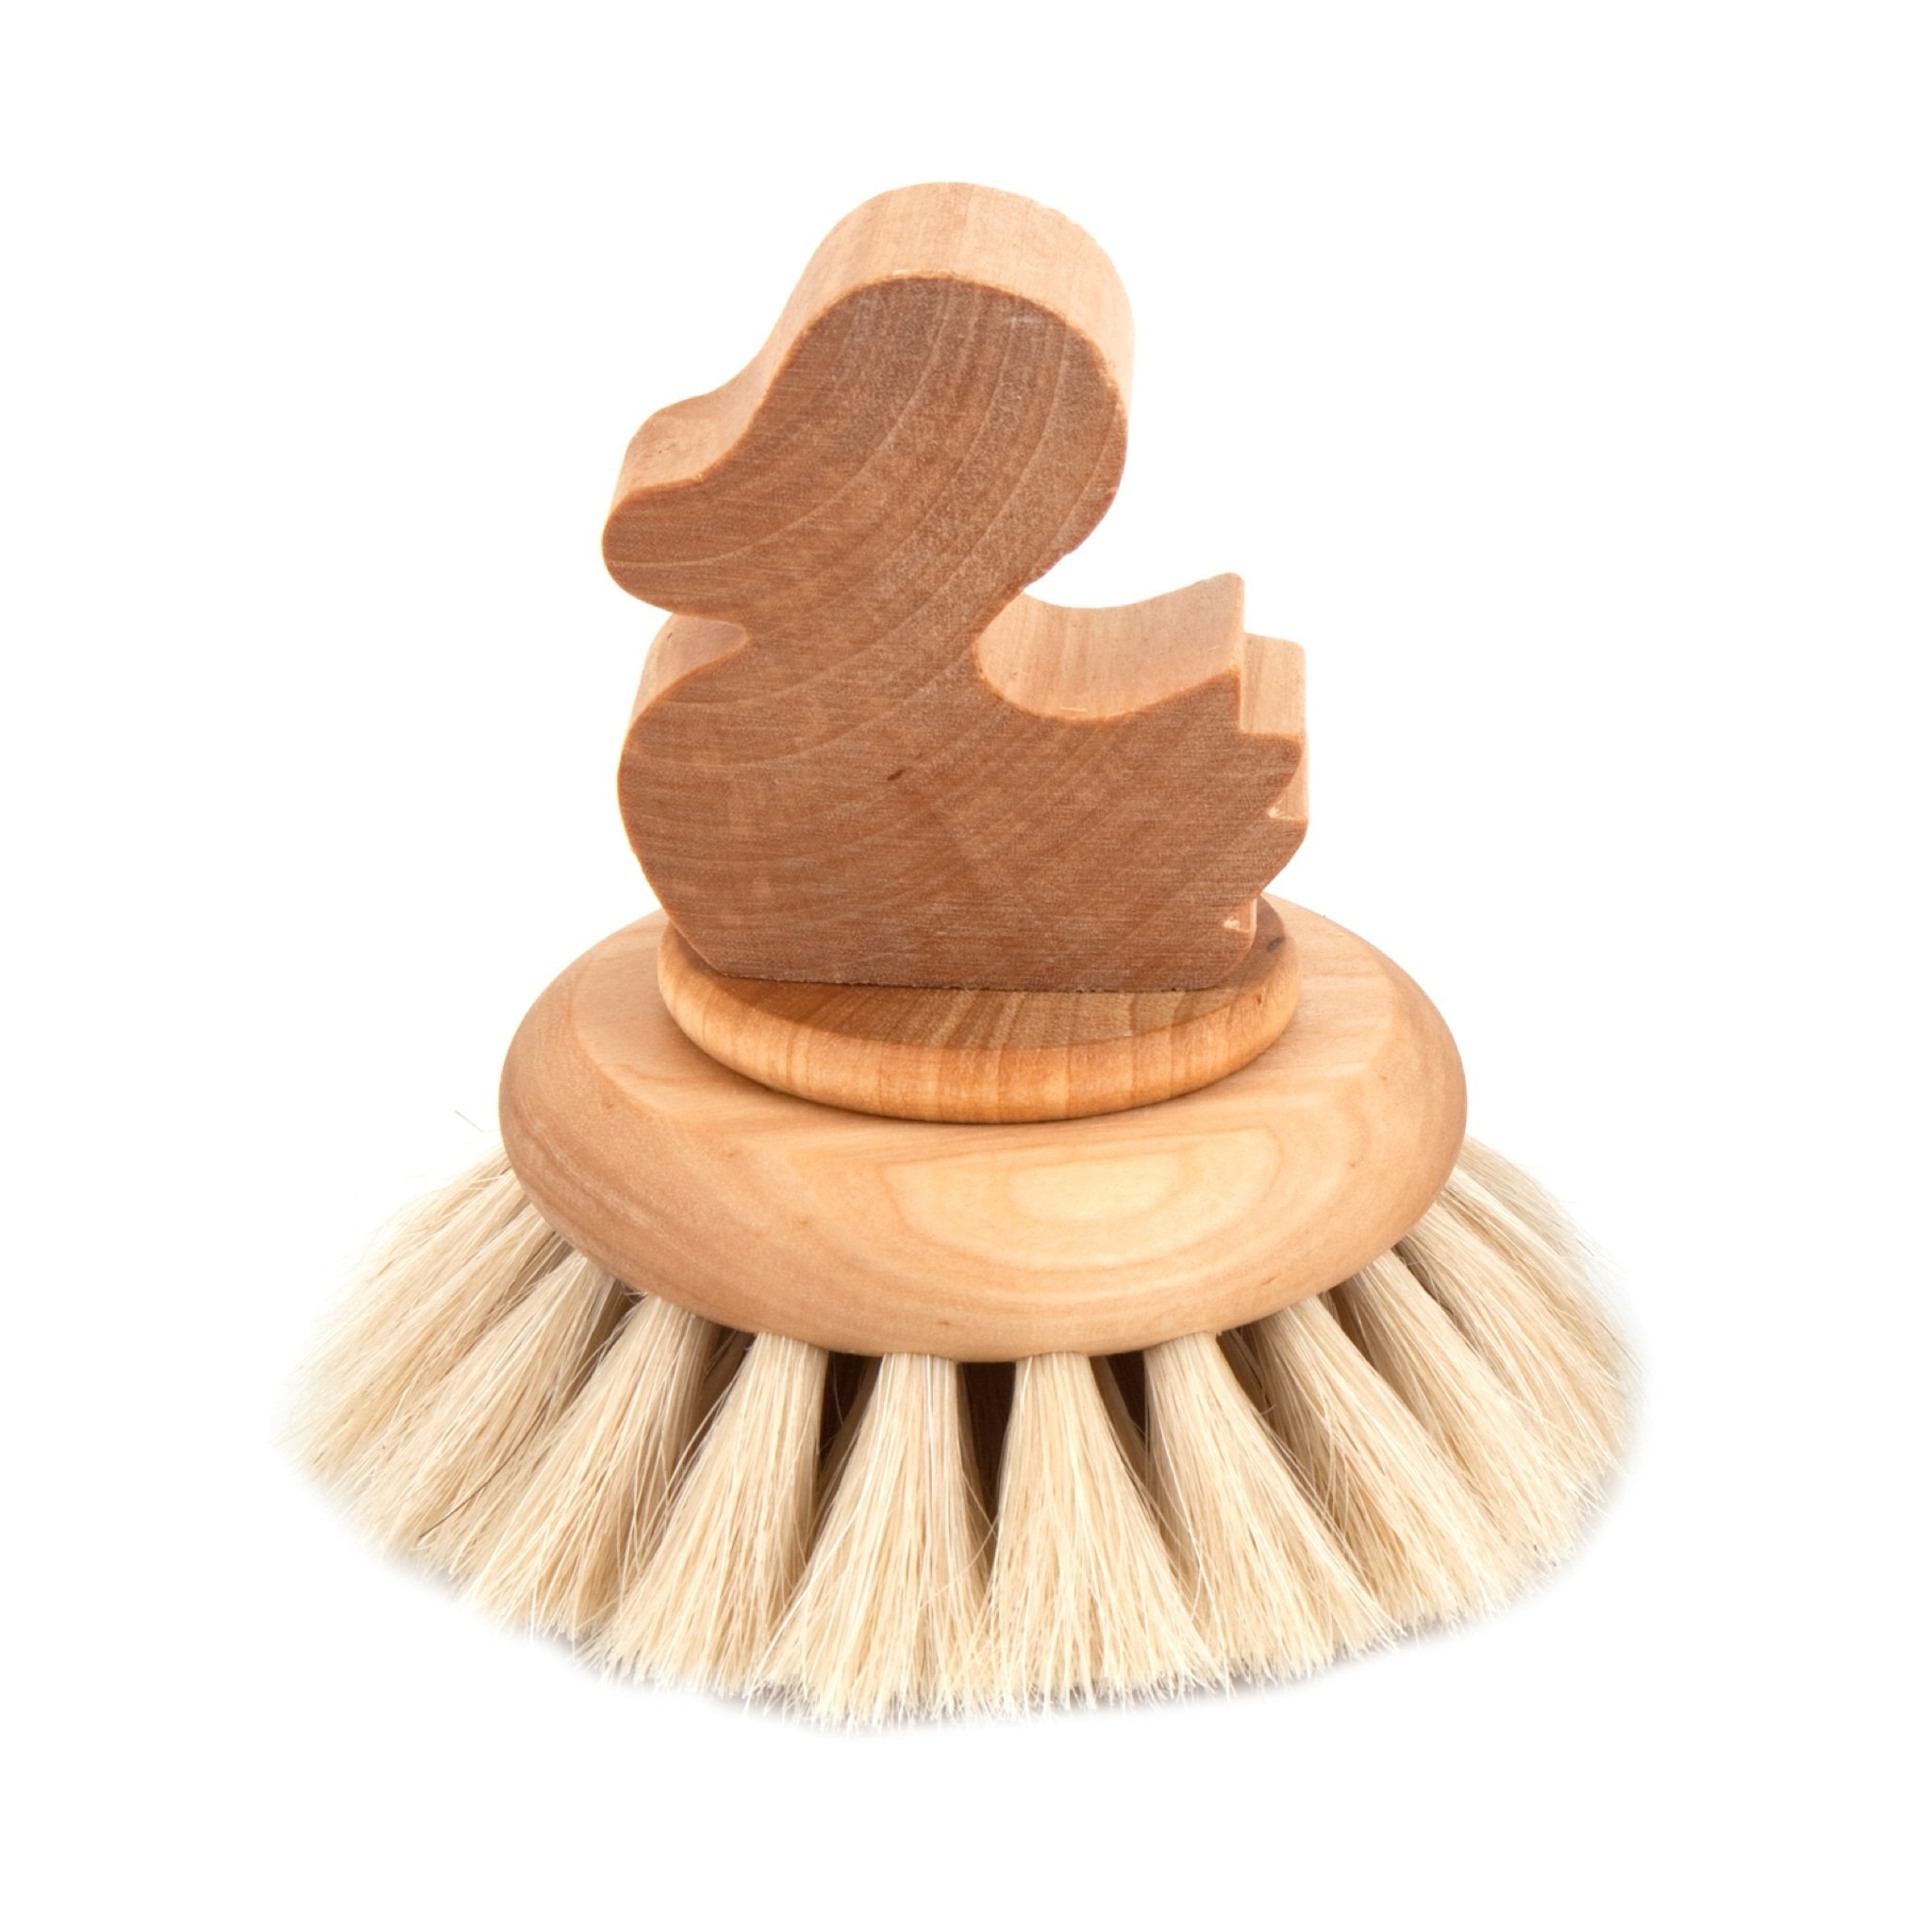 Big Duck Bath Brush by Iris Hantverk